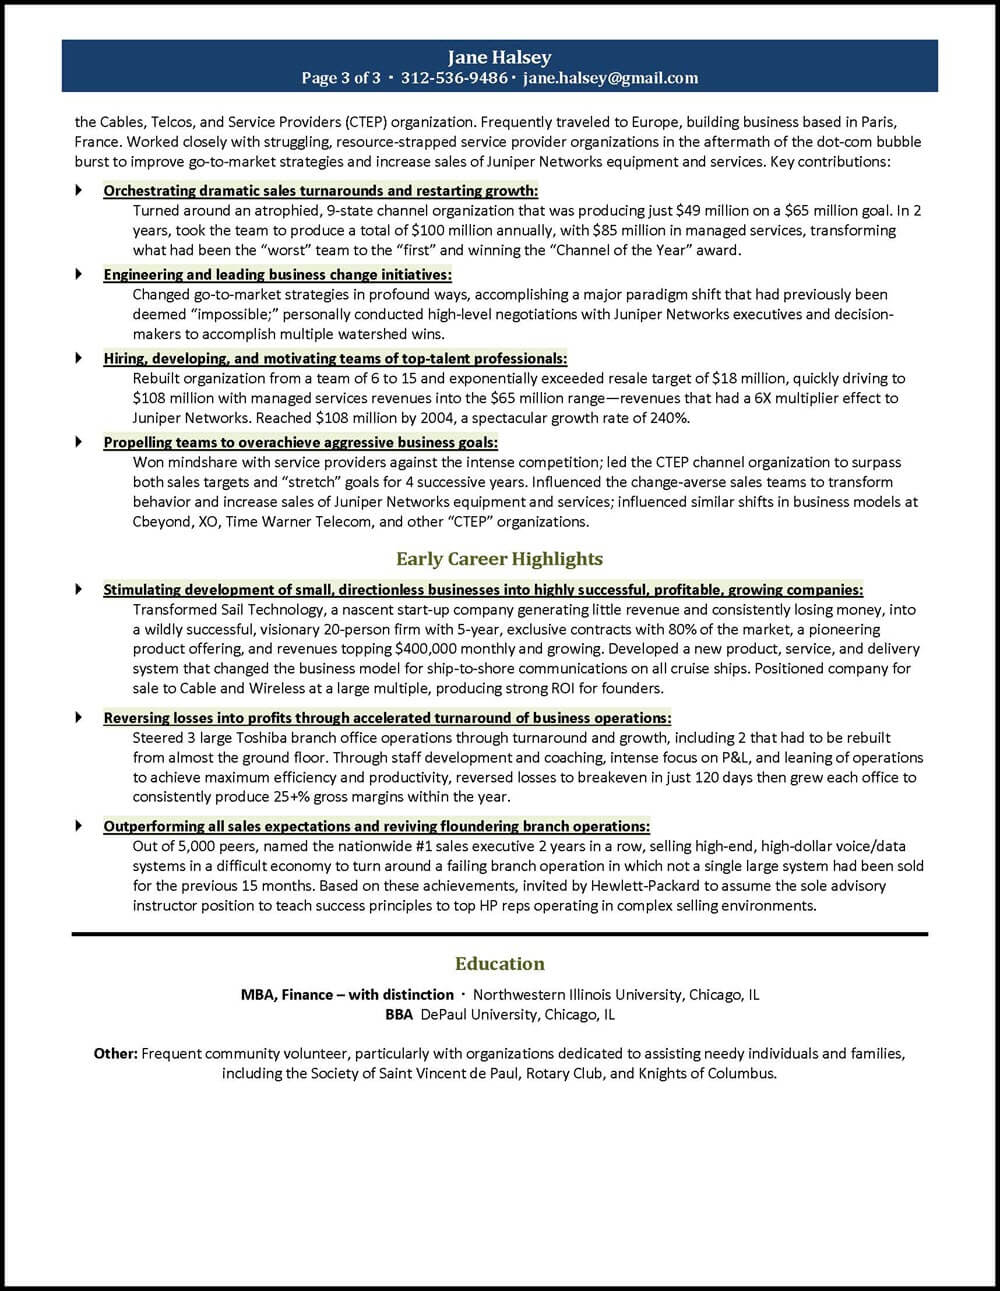 General Manager Resume Page 3